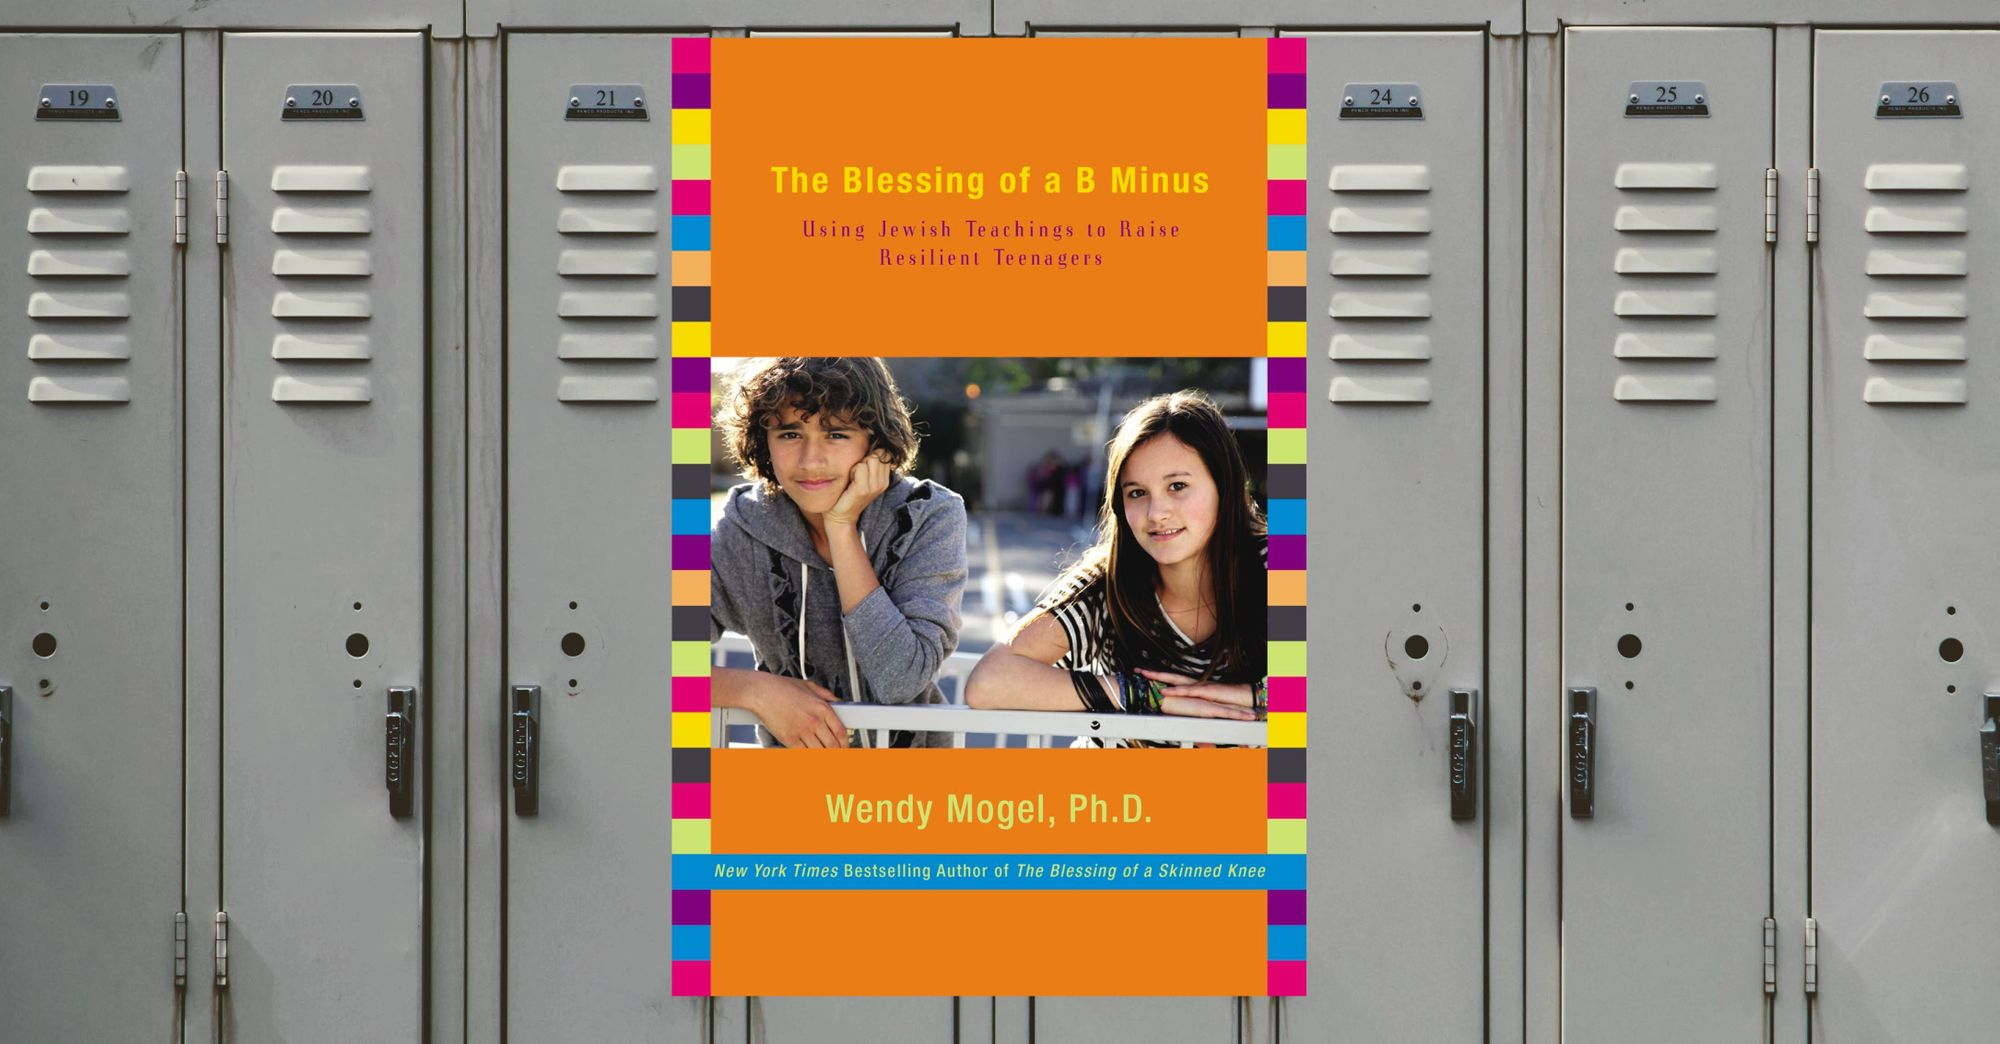 Book Review: The Blessing of a B Minus